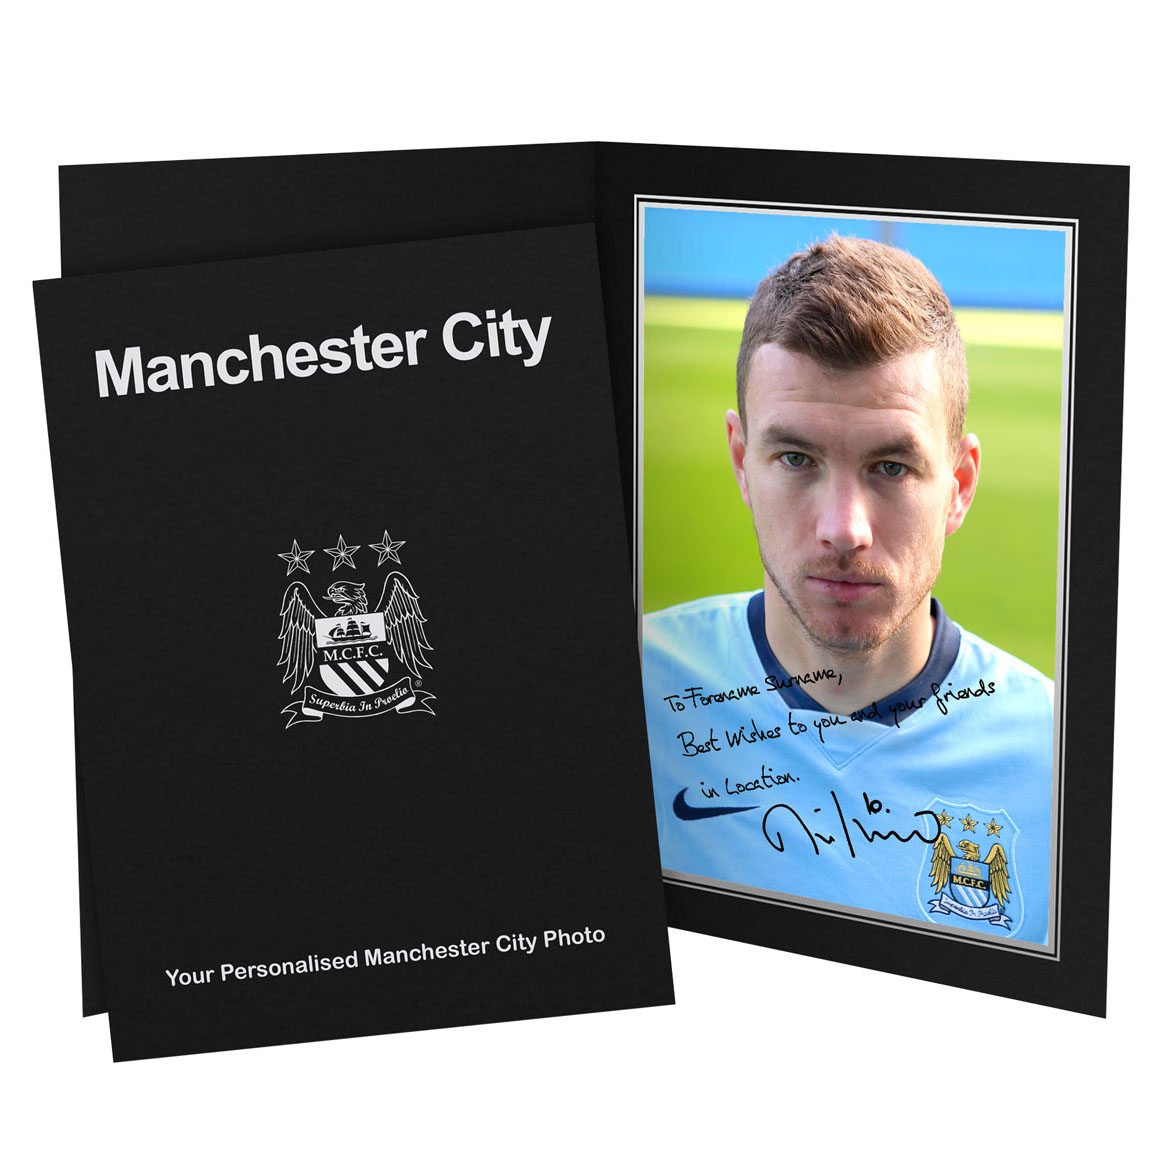 Manchester City Personalised Signature Photo in Presentation Folder - Edin Dzeko